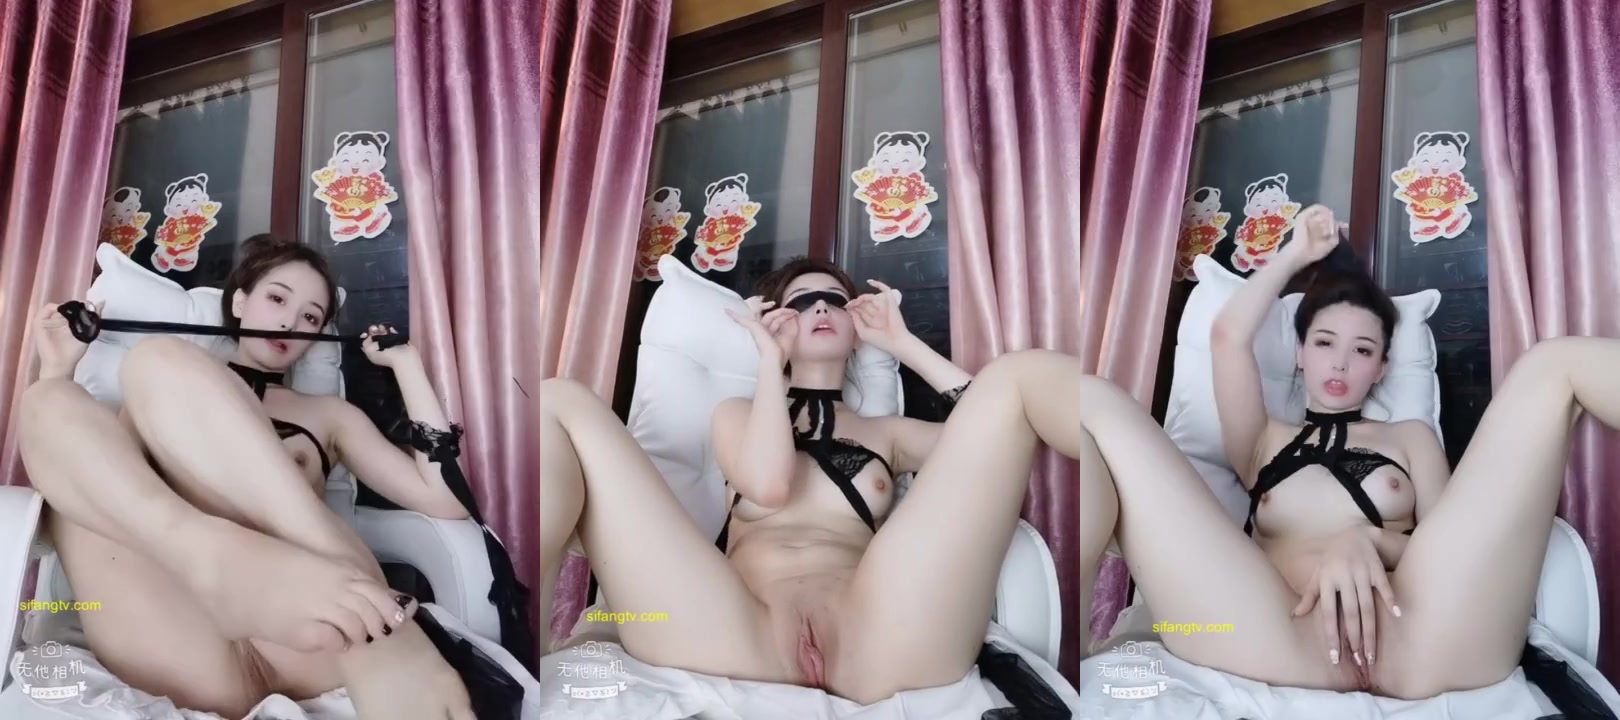 Chinese dance goddess peach buttocks sexy lingerie words core striptease 3